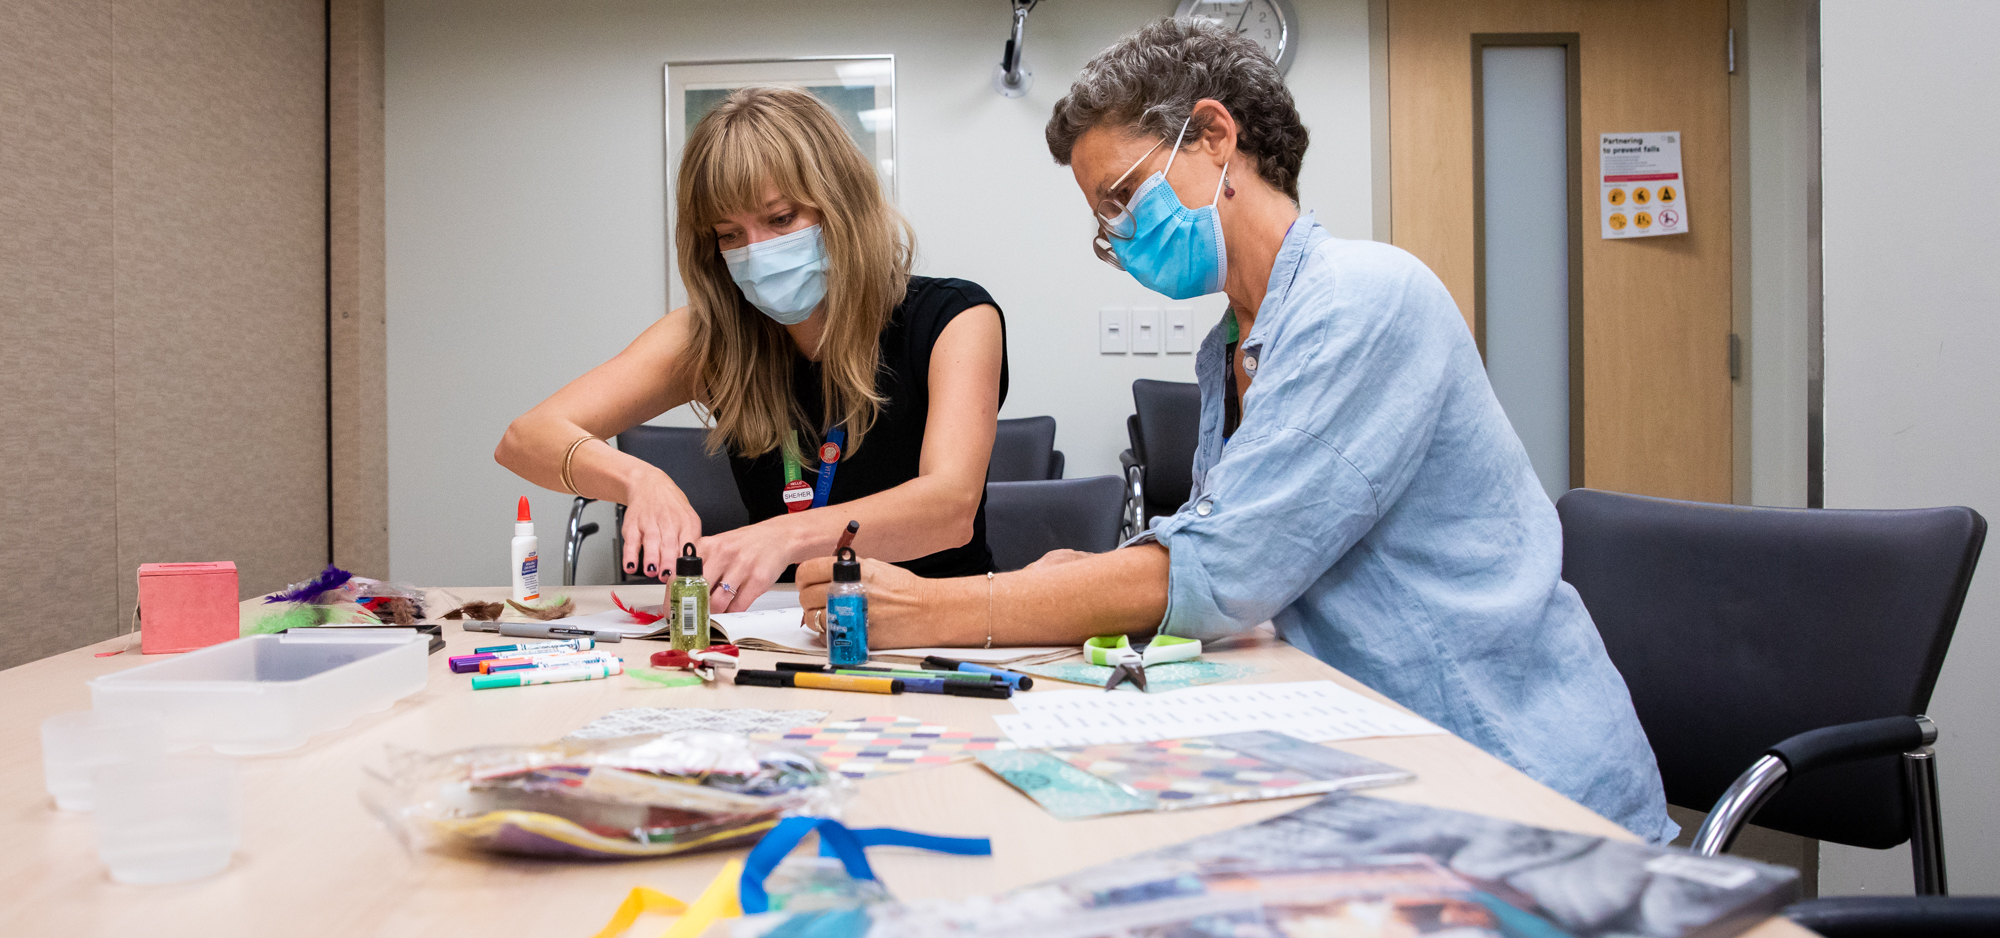 Arts-based program at Mount Sinai Hospital supports care partners of people with dementia